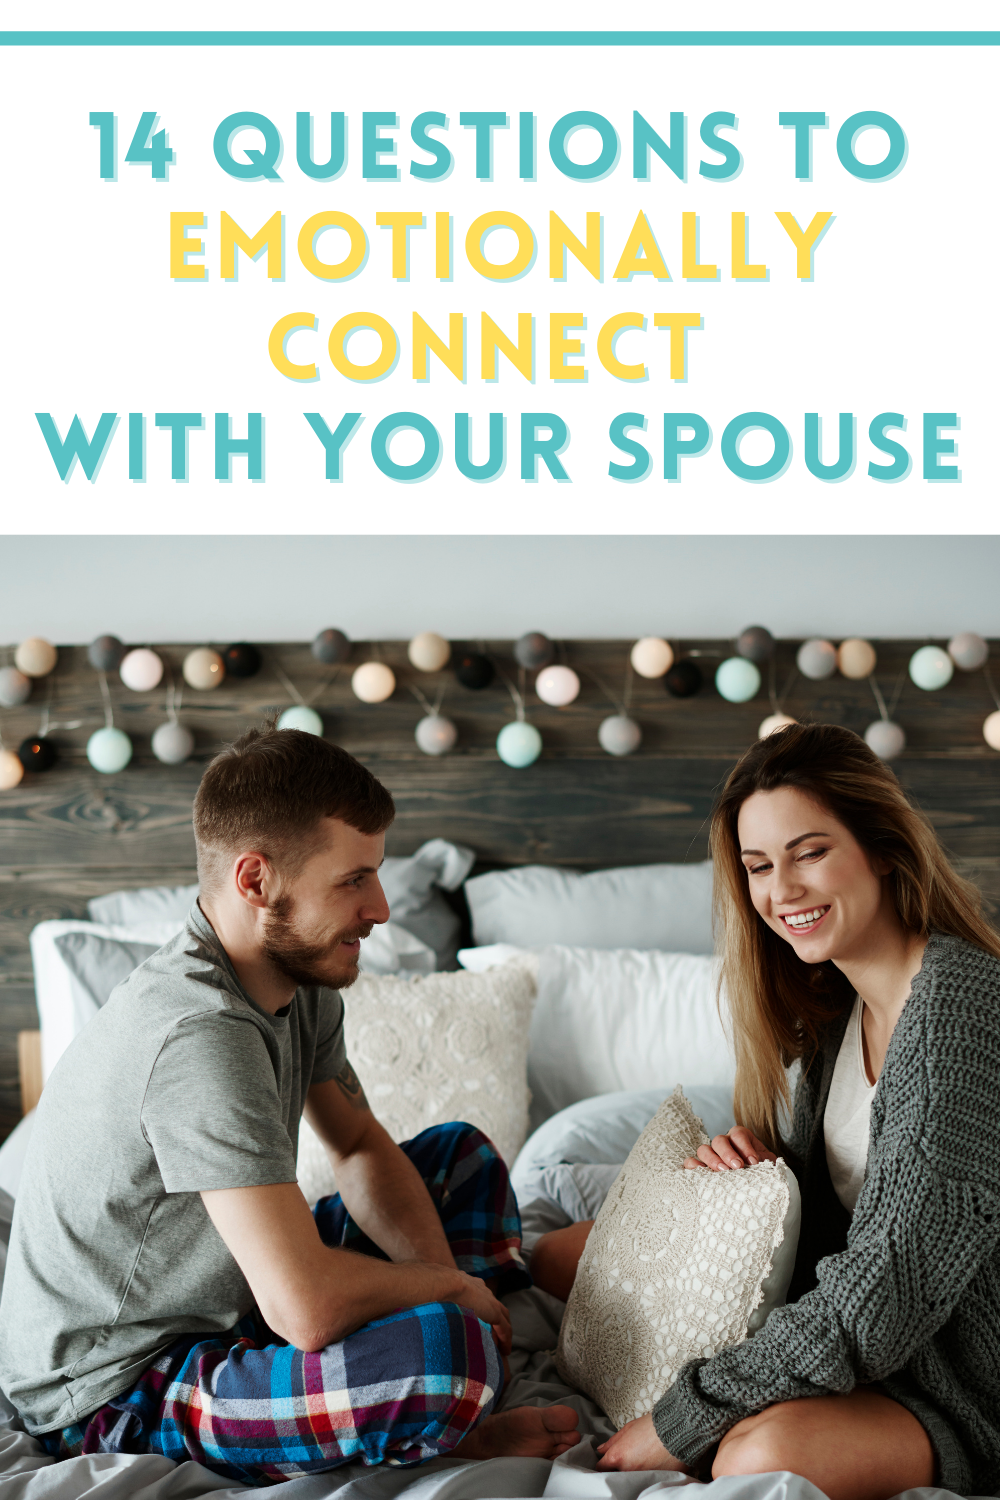 14 questions to emotionally connect with your spouse